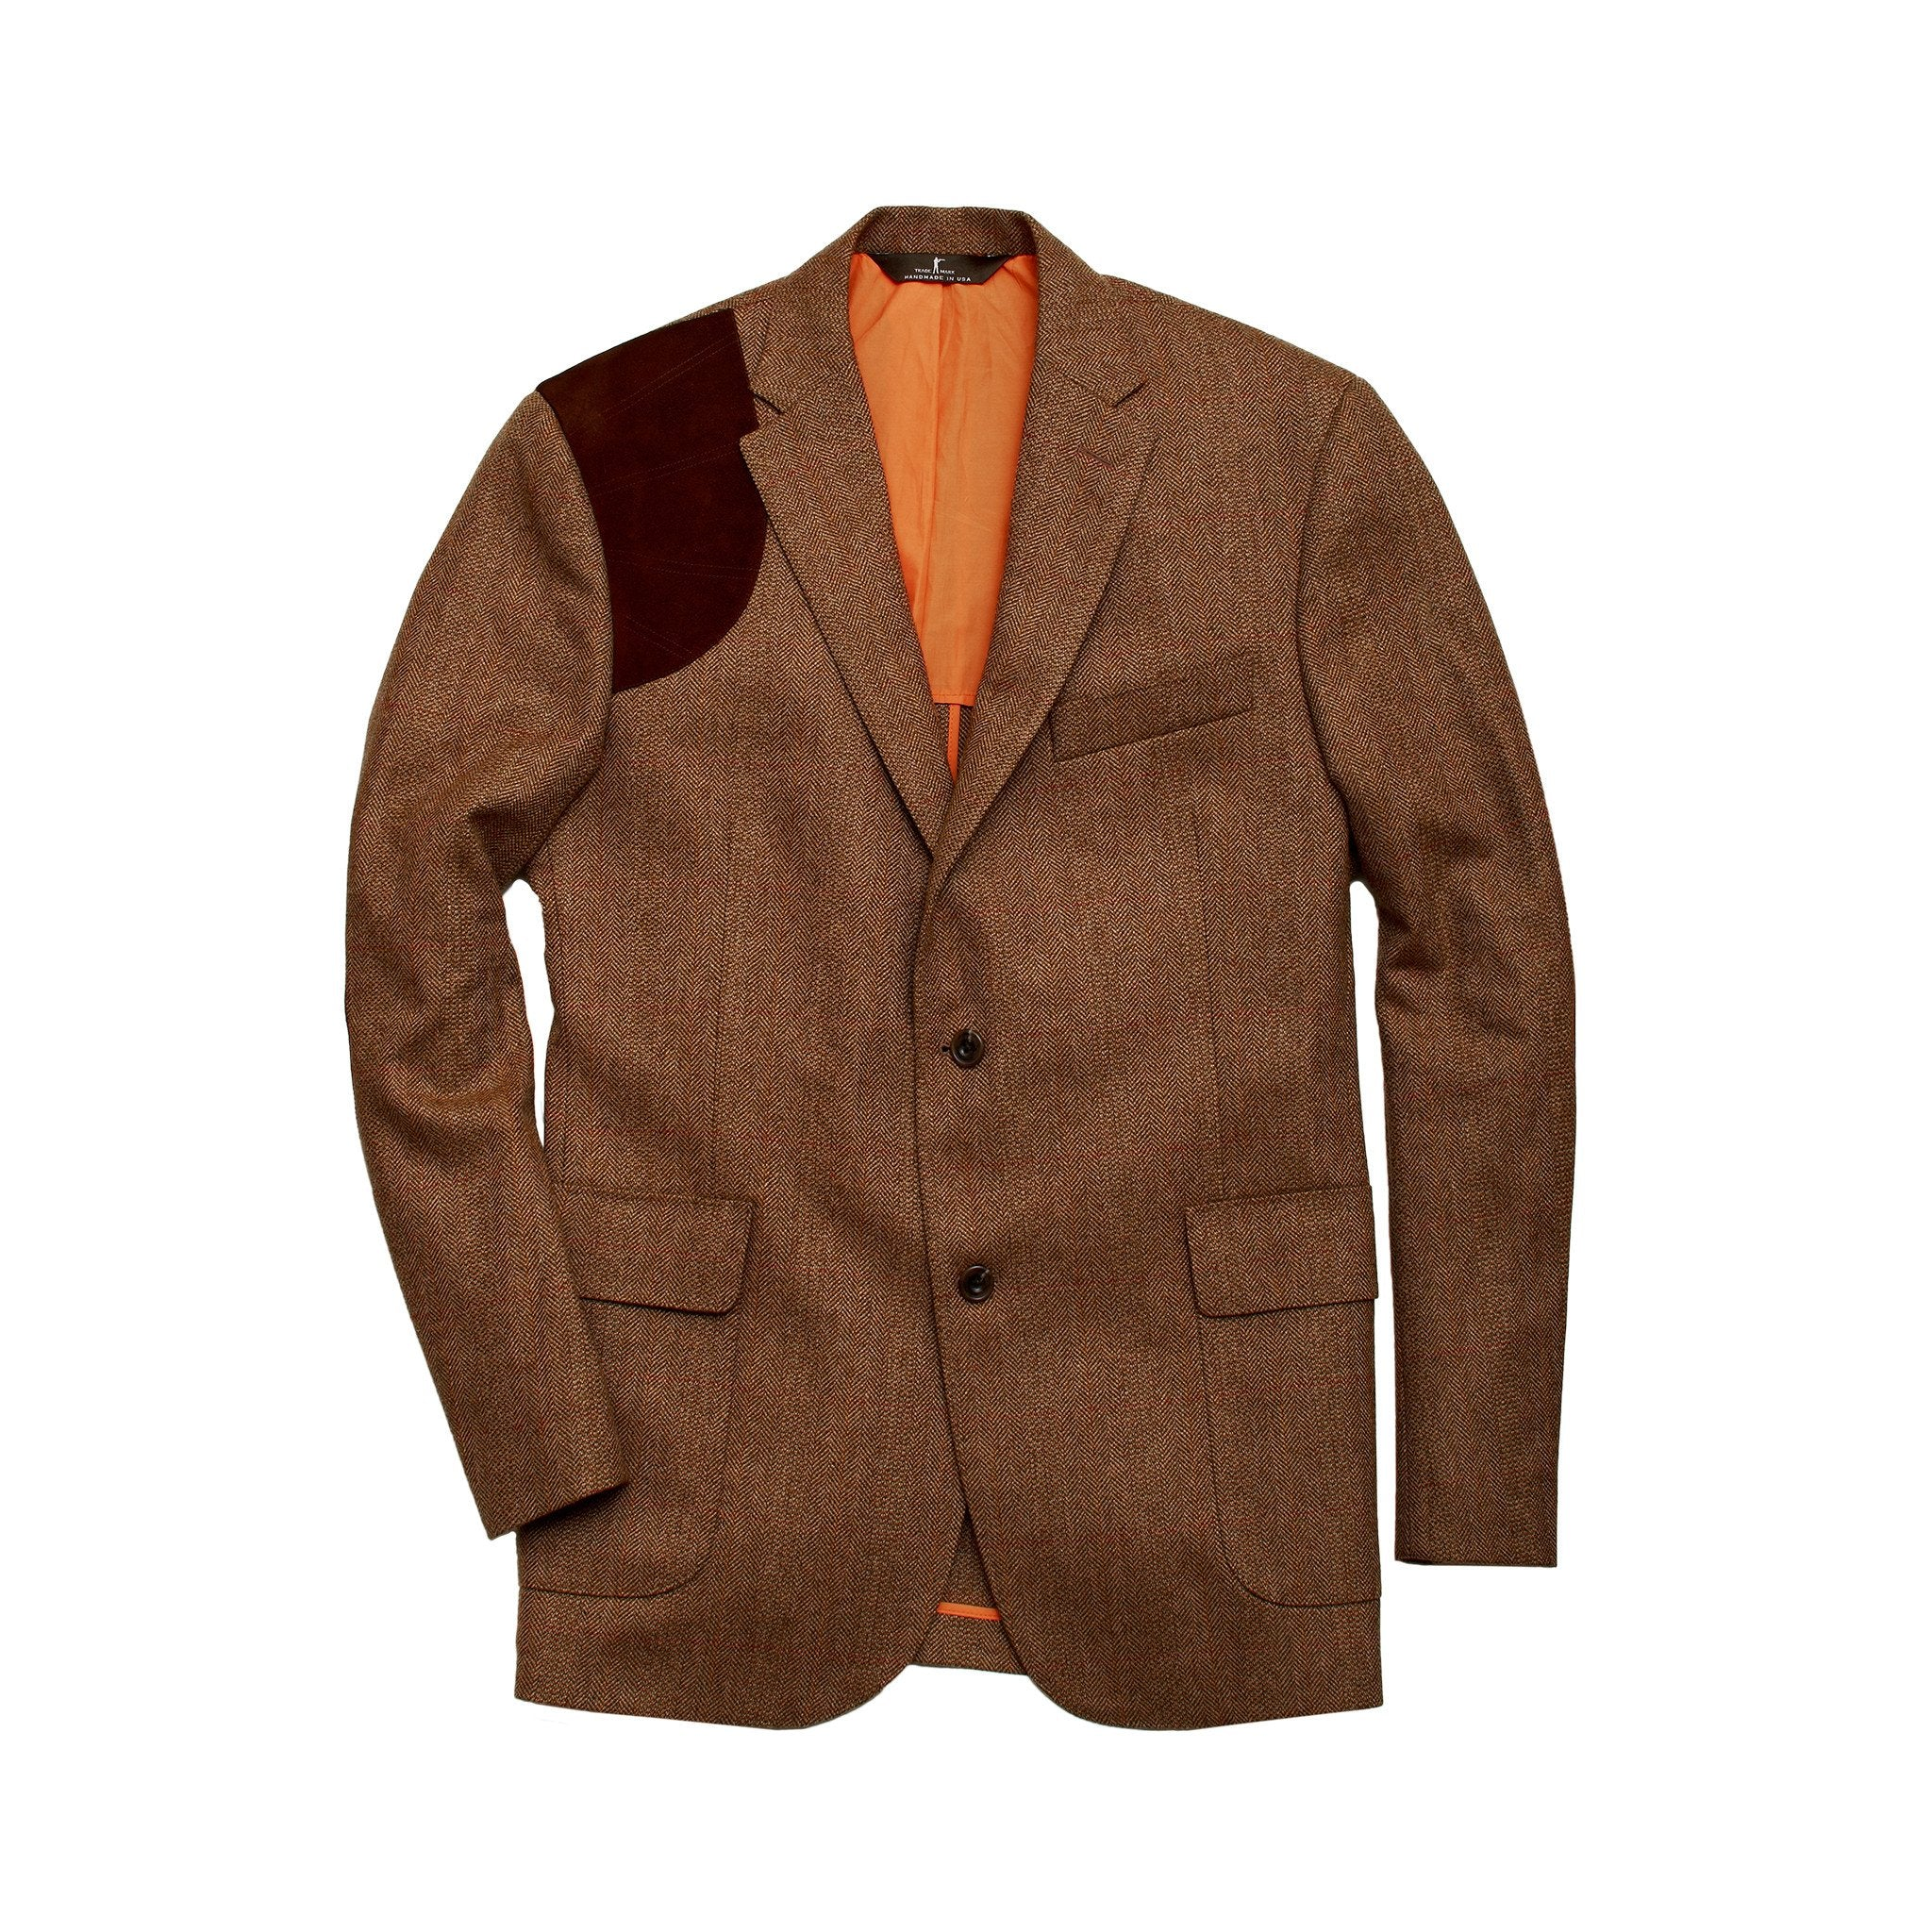 The Shooting Jacket